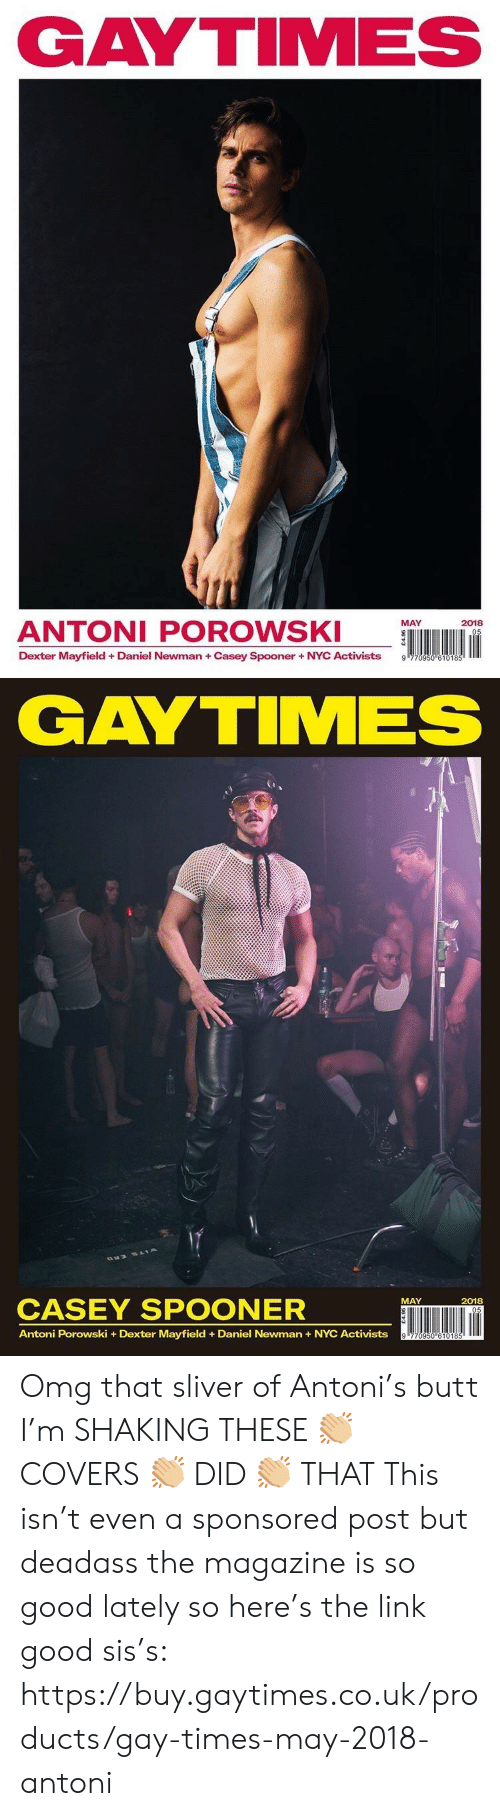 Dexter: GAYTIMES  ANTONI POROWS  MAY  2018  Dexter Mayfield + Daniel Newman + Casey Spooner + NYC Activists  9   GAYTIMES  CASEY SPOONER  ÜNI lin  MAY  2018  Antoni Porowski +Dexter Mayfield Daniel Newman+NYC Activists Omg that sliver of Antoni's butt I'm SHAKING THESE 👏🏼 COVERS 👏🏼 DID 👏🏼 THAT  This isn't even a sponsored post but deadass the magazine is so good lately so here's the link good sis's: https://buy.gaytimes.co.uk/products/gay-times-may-2018-antoni